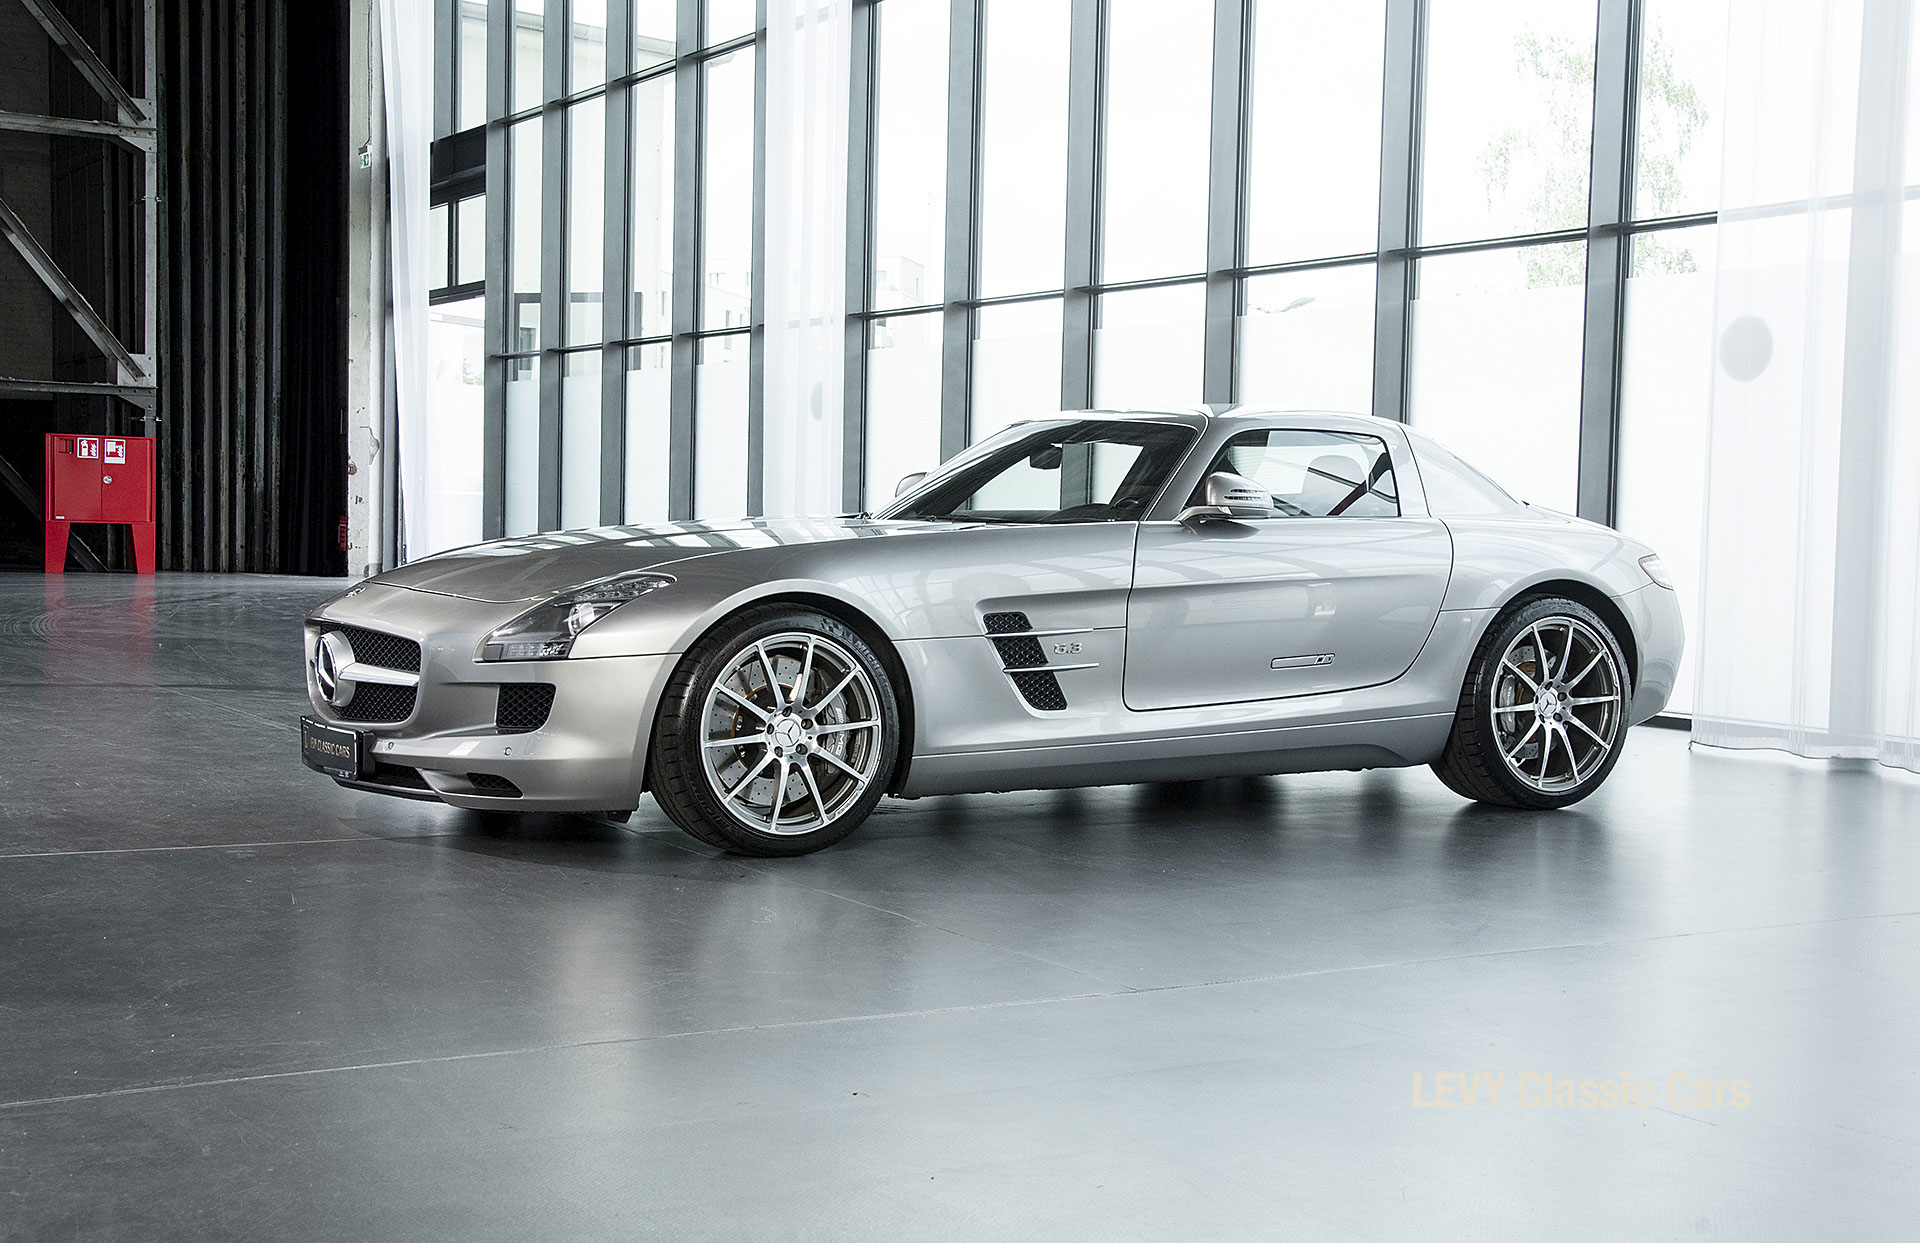 MB SLS AMG 6,3 Coupe 05633 098